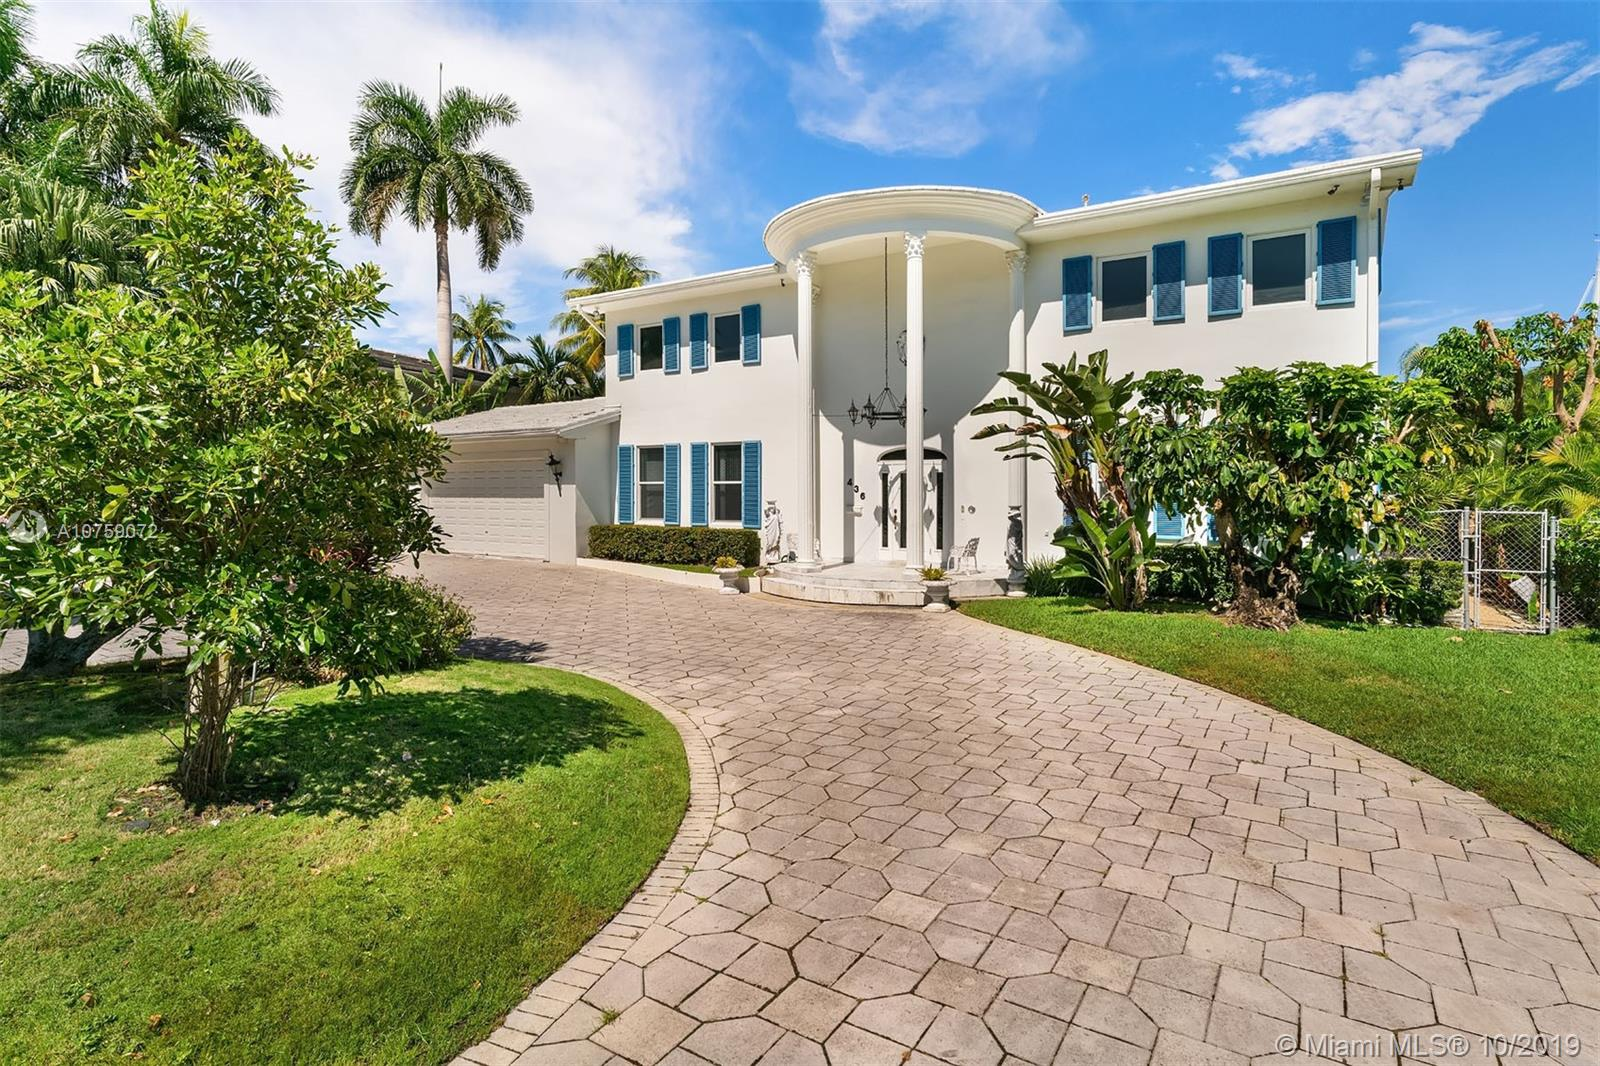 ESTATE SALE! INCREDIBLE OPPORTUNITY TO LIVE ON THE WATER. BOATER'S DREAM! HUGE HOUSE WITH AN AN APROX 15000 SQ FT LOT. OVER 6000 SQ FT IN THE LIVING AREA! OVER 6OO SQ FT OF GARAGE. A TRUE OASIS, JUST MINUTES AWAY FROM THE BEACH. 3 BEDS/2 BATHS RESIDENCE WITH BRIGHT FLORIDA ROOM, ENTERTAINMENT ROOM, FORMAL DINNING ROOM, HUGE LIVING ROOM, POOL, 2 CAR GARAGE. SPECIAL PAVER DRIVEWAY. JUST NEEDS THE RIGHT INVESTOR TO BALANCE THE AESTHETIC CONSIDERATIONS WITH STRUCTURAL PLANNING, BASED ON THE PERSON'S LIFESTYLE AND TASTE. 100 FT OF DEEP CANAL FRONTAGE, PRIVATE DOCK, NO FIXED BRIDGES, SHORT RIDE TO THE HAULOVER INLET.  ALL OFFERS WILL BE CONSIDERED. MUST SEE IT TO APPRECIATE IT!